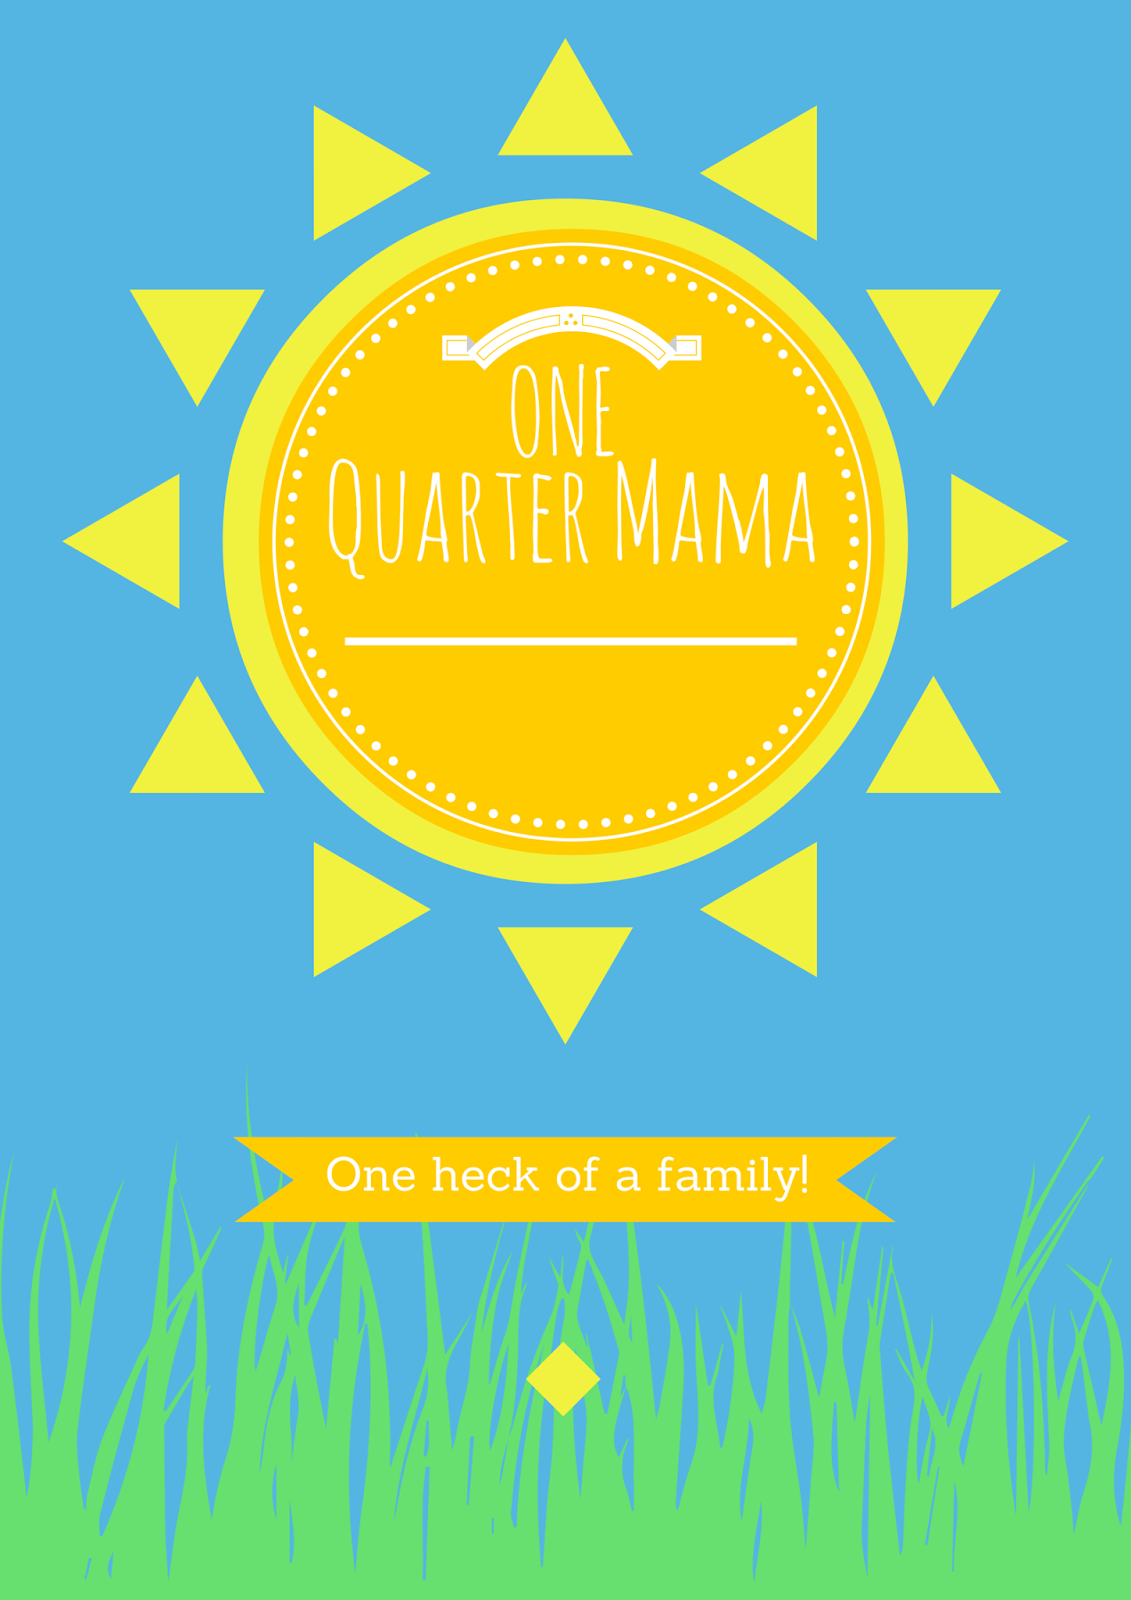 One Quarter Mama brand logo on OneQuarterMama.ca